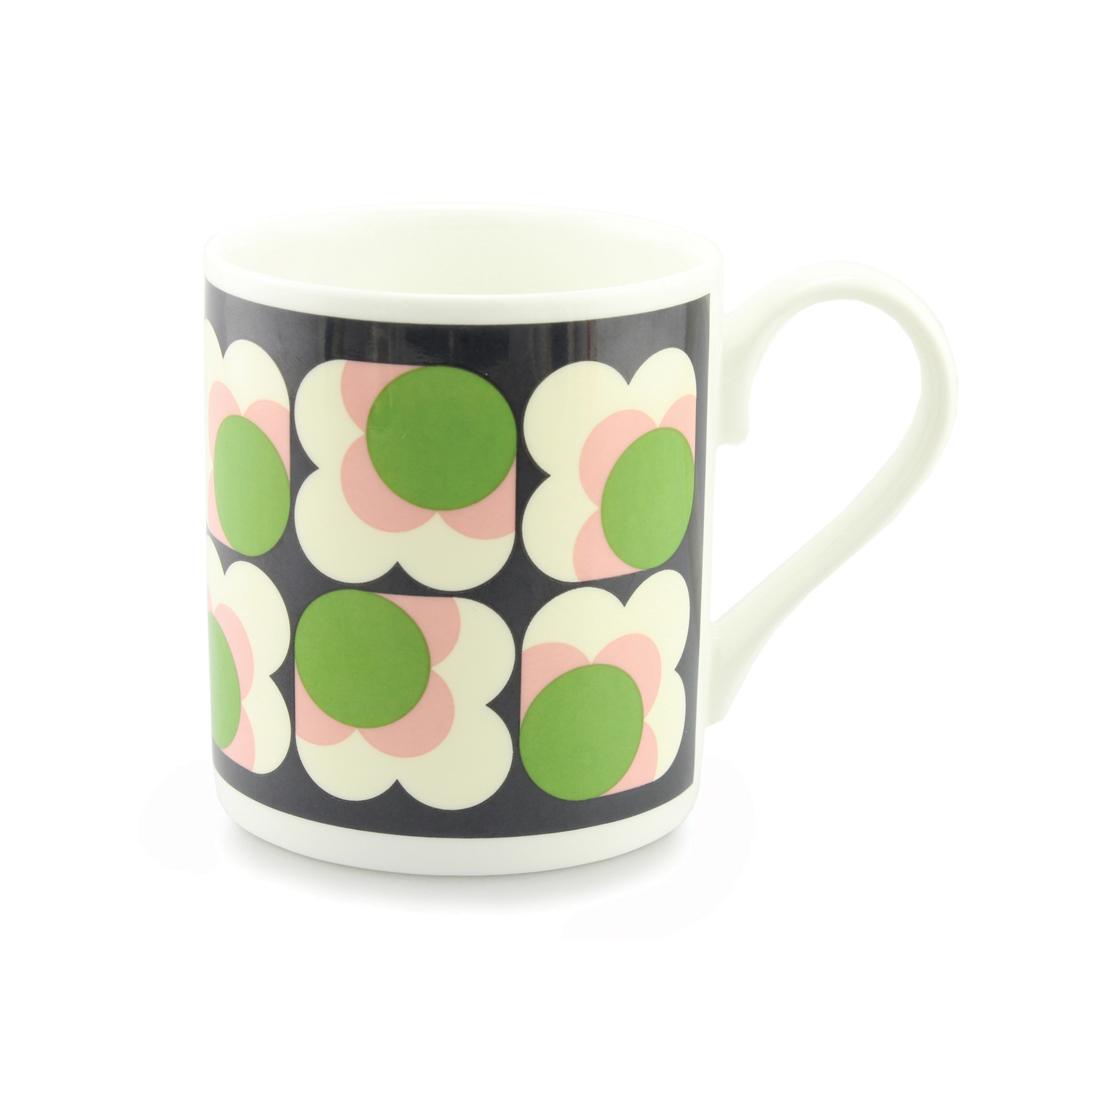 Orla Kiely Mug - Apple Big Spot Flower